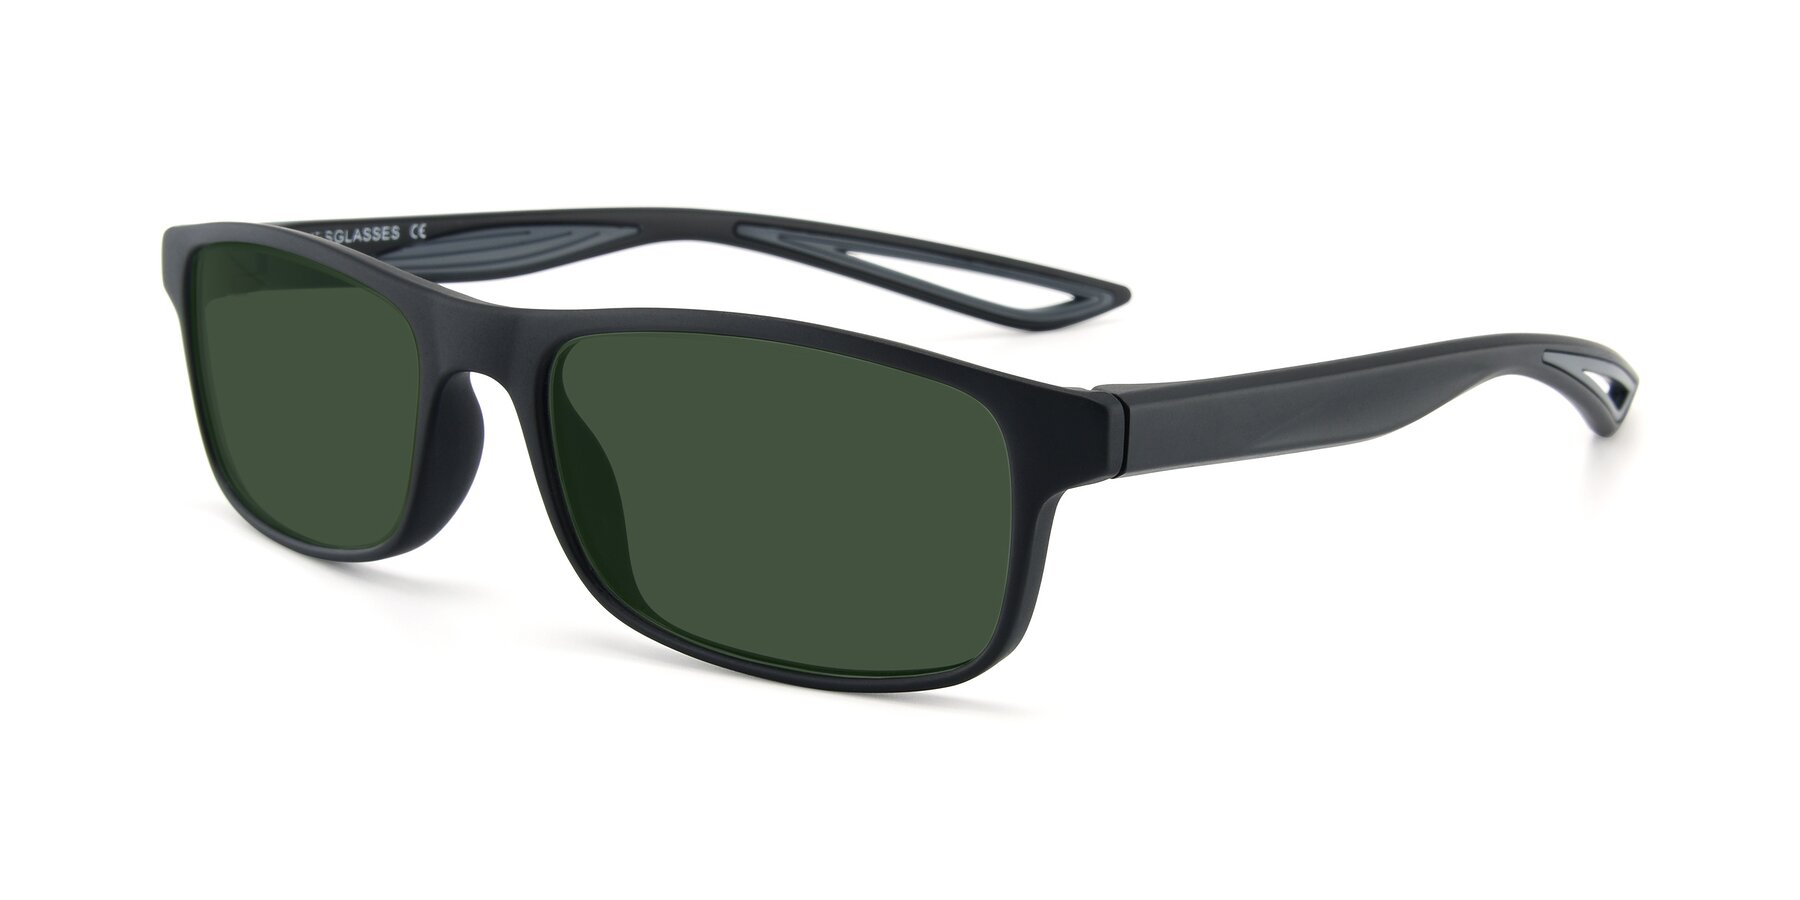 Angle of AC4679 in Matte Black-Gray with Green Tinted Lenses